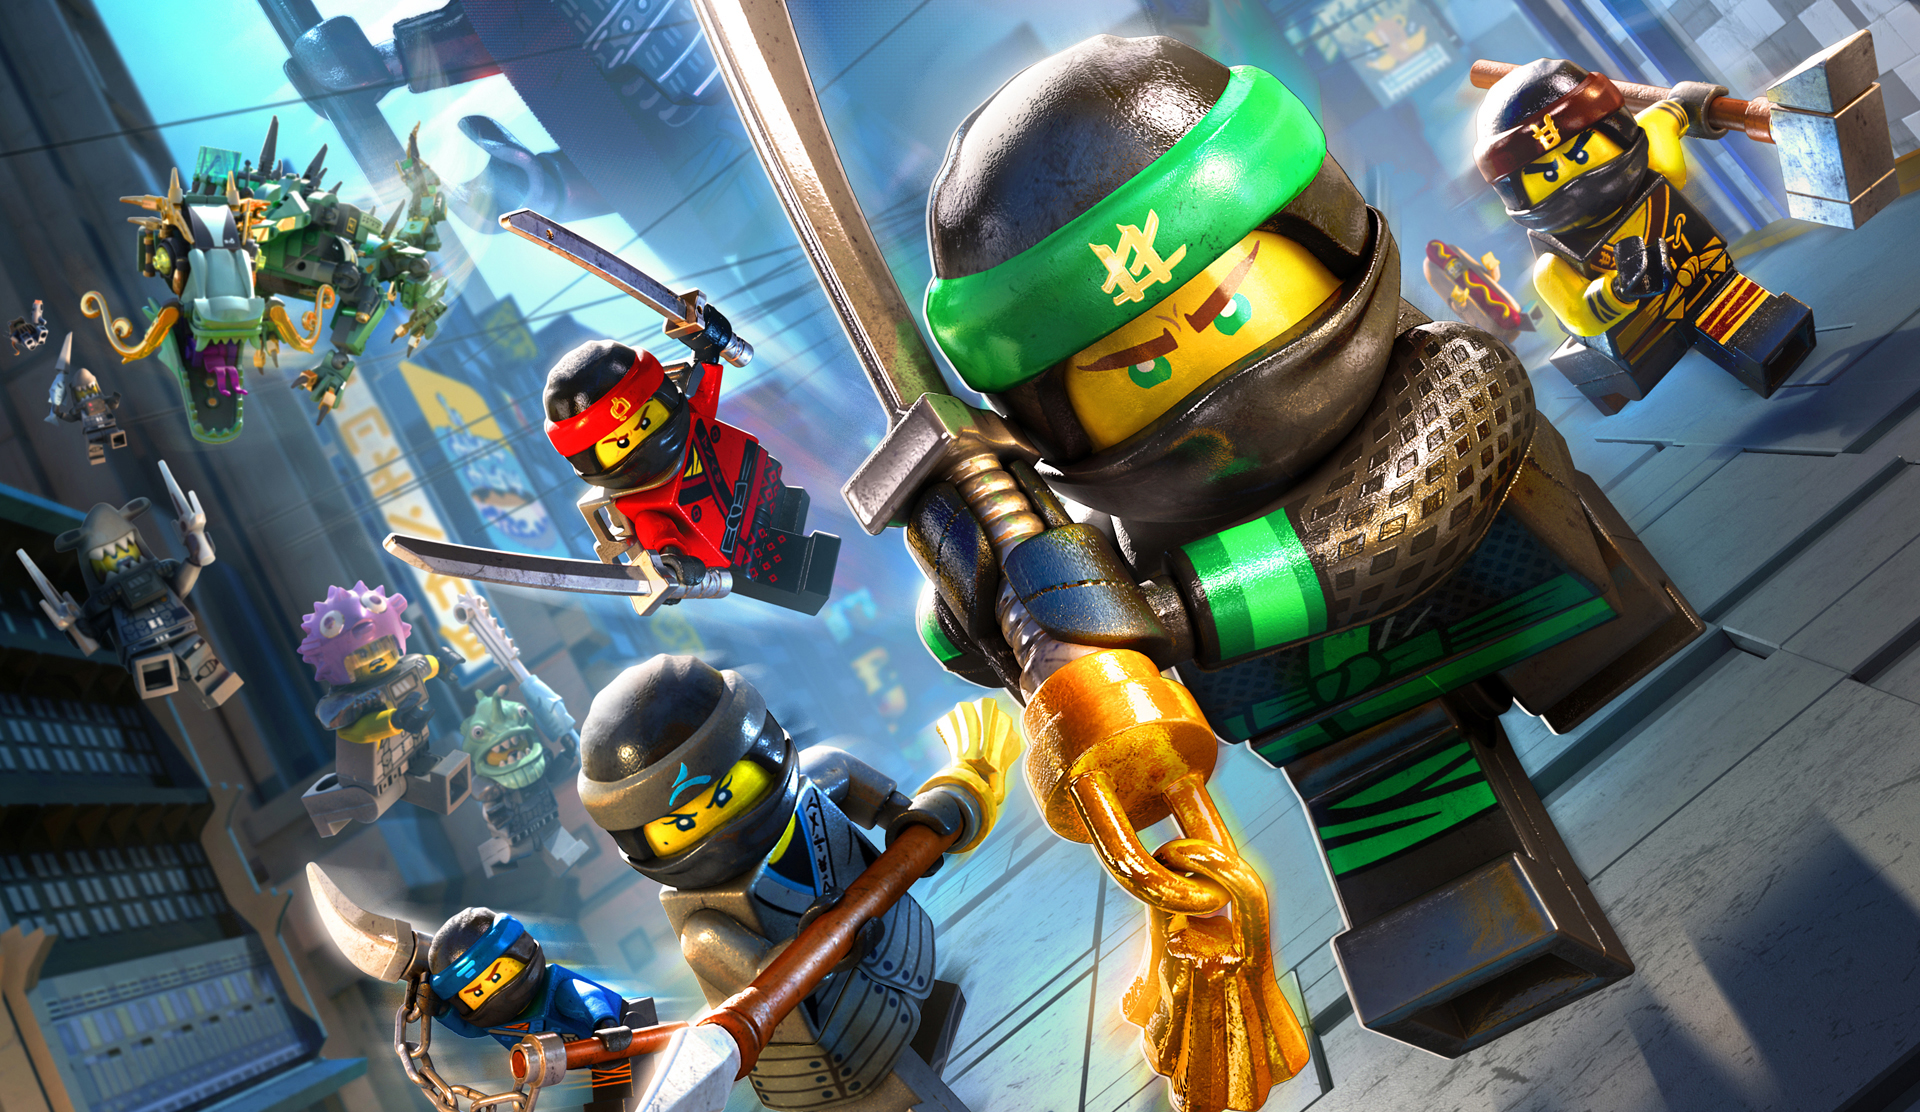 This is a photo of Zany Pictures of Ninjago Characters